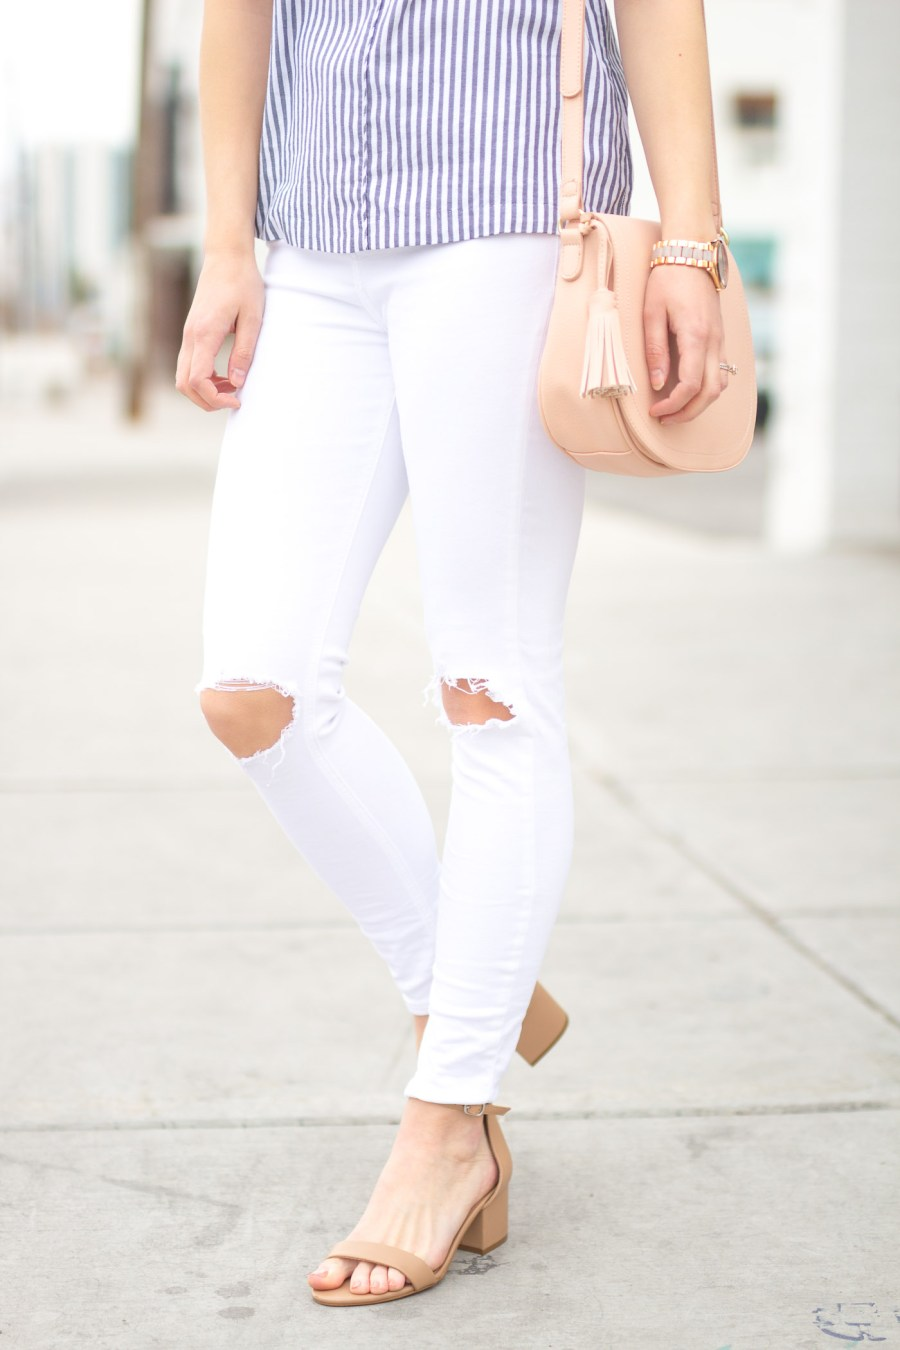 The Best Spring Sandals Under $100, Steve Madden Irenee sandal, fashion blog, Treats and Trends